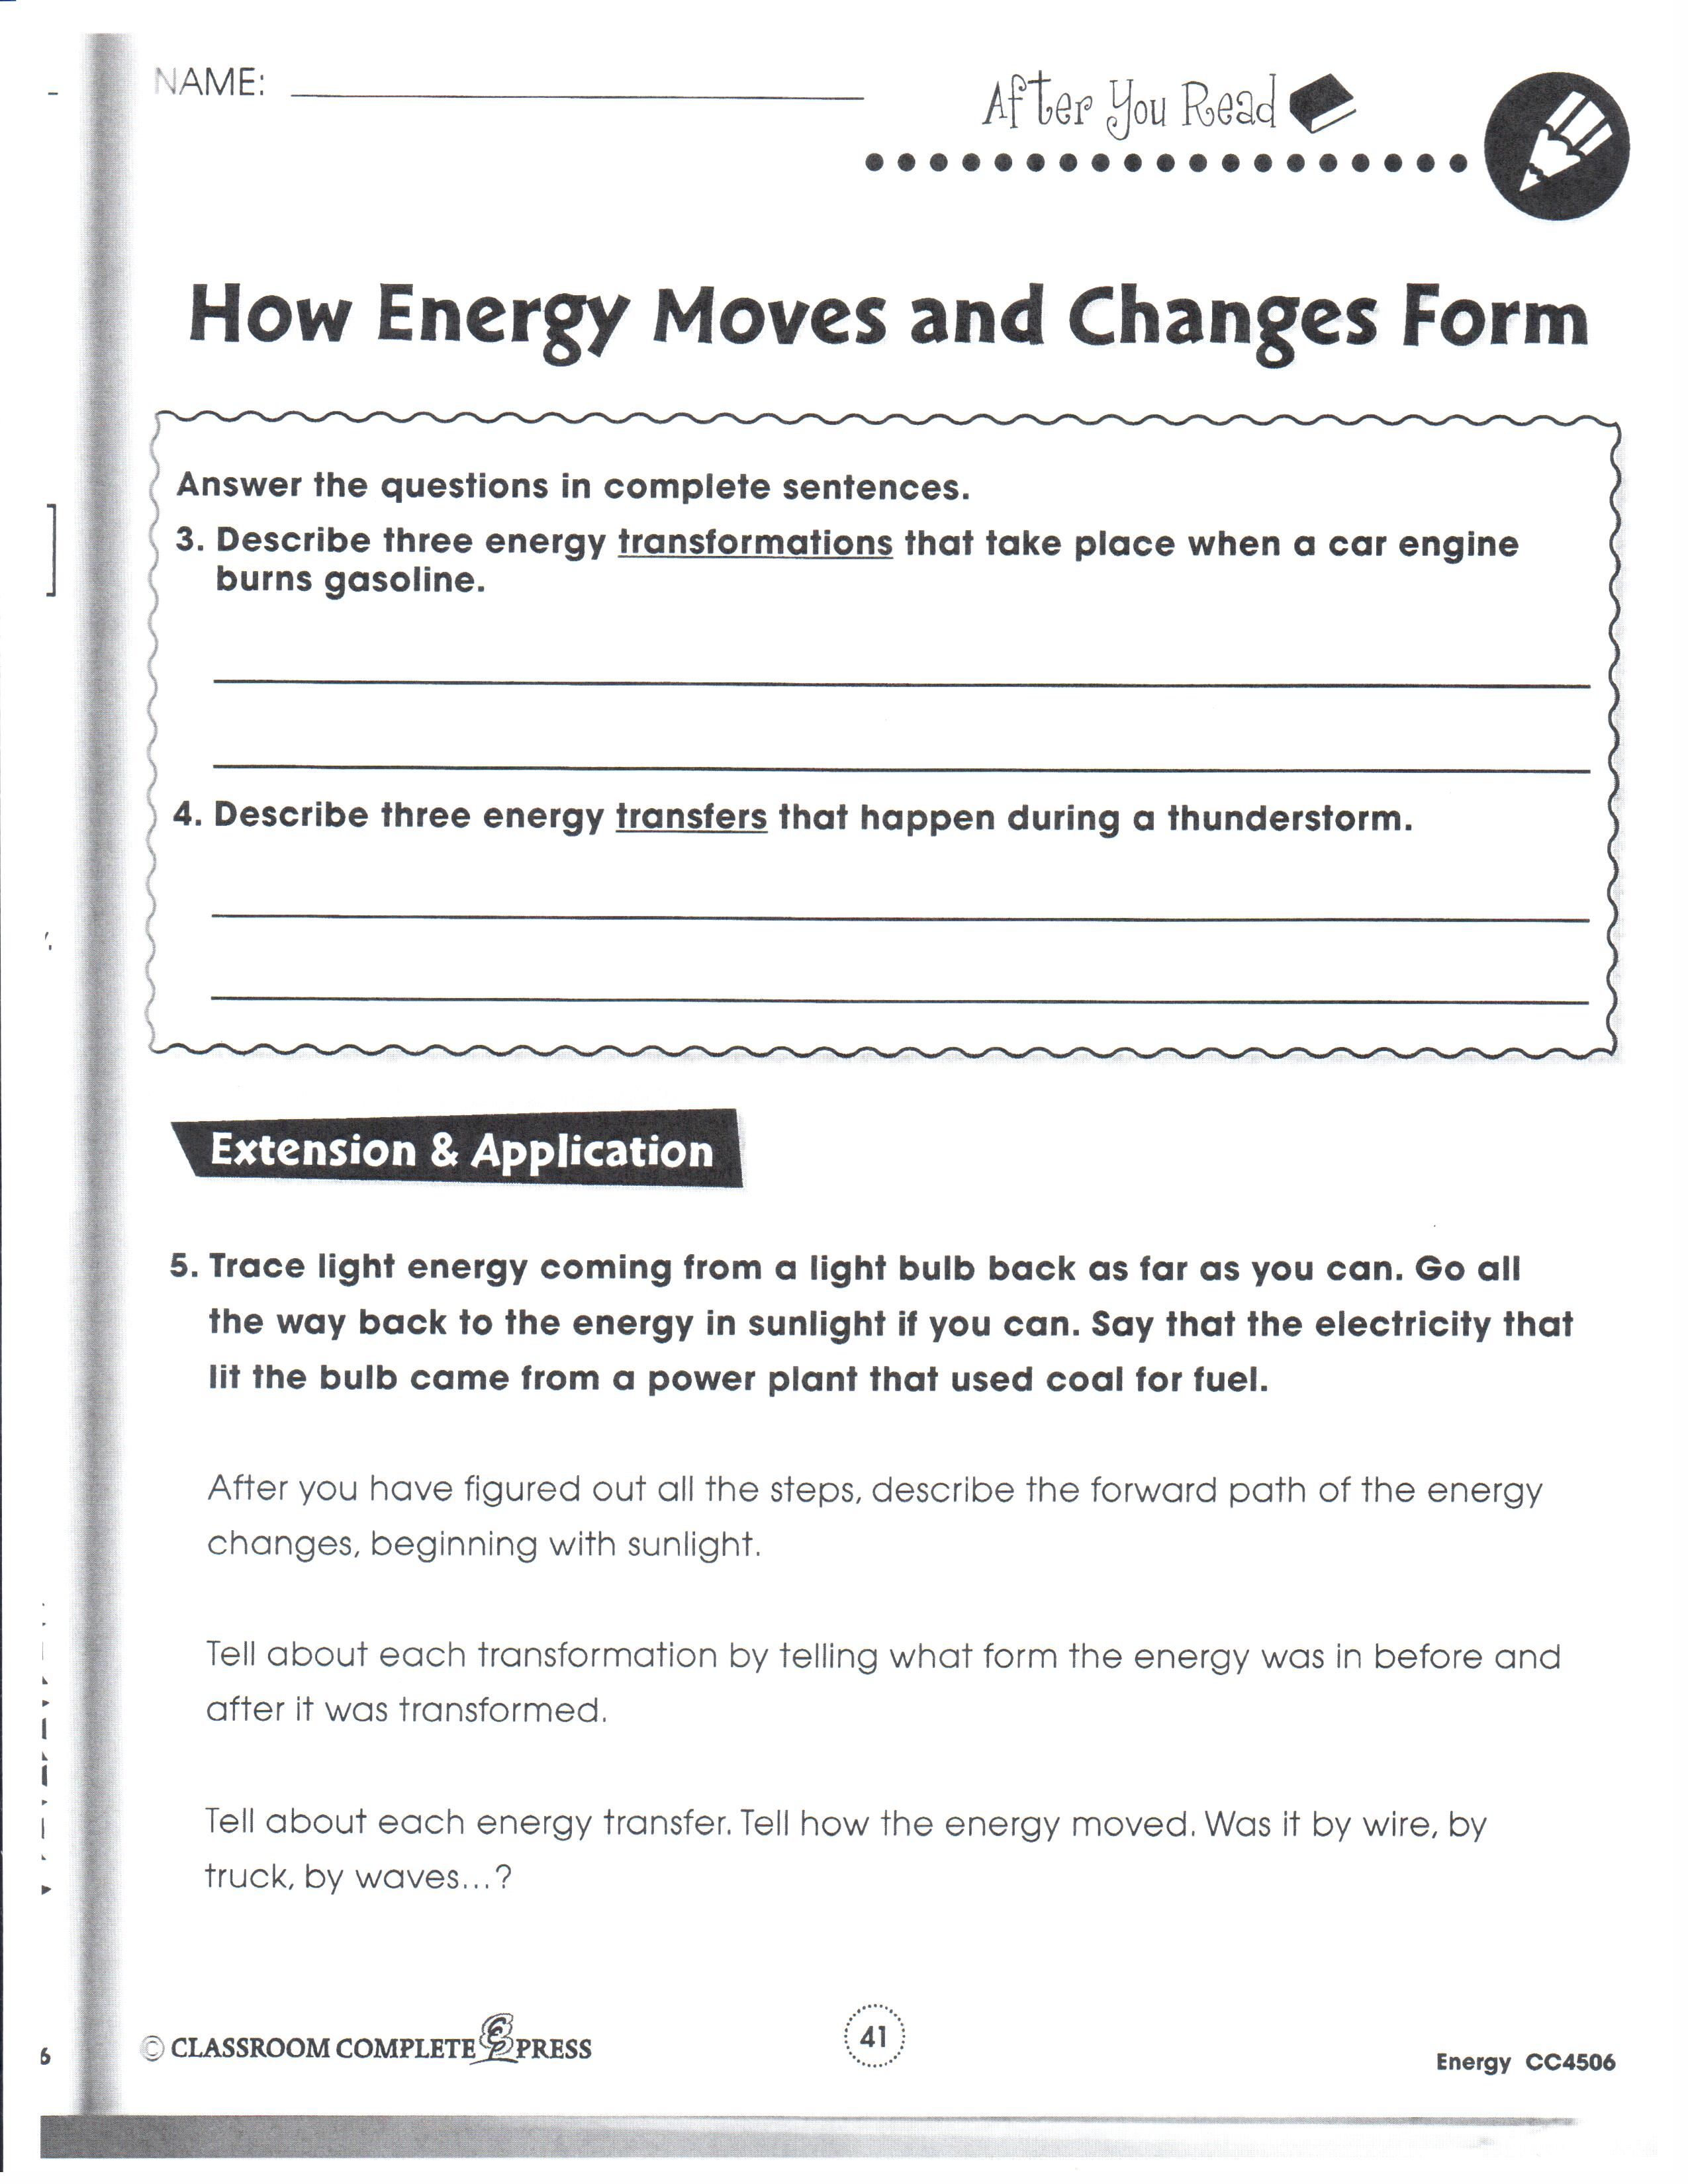 Worksheets Energy Transformations Worksheet physical science january 2013 mrs garchows classroom 8th 01 18